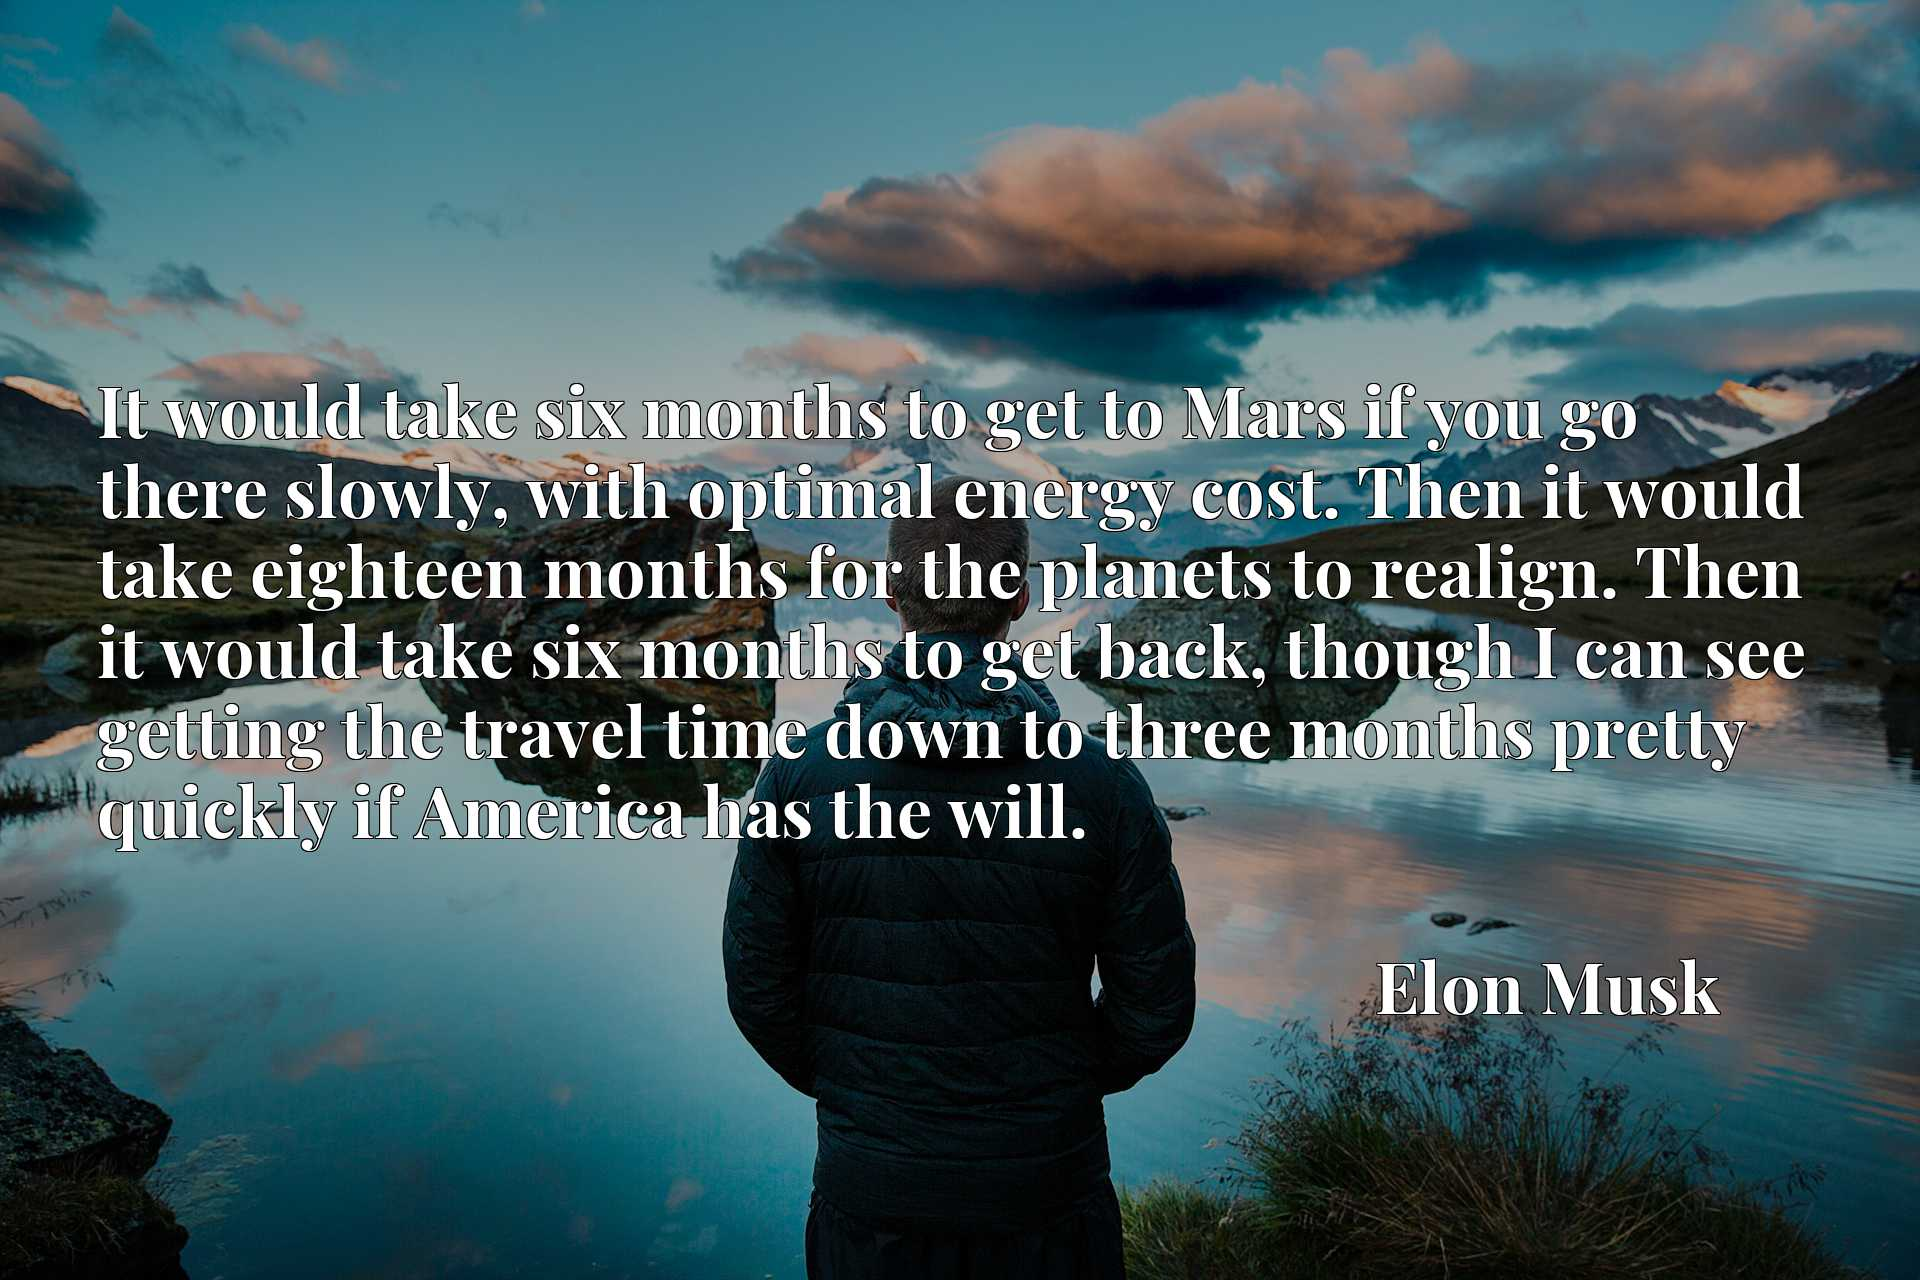 It would take six months to get to Mars if you go there slowly, with optimal energy cost. Then it would take eighteen months for the planets to realign. Then it would take six months to get back, though I can see getting the travel time down to three months pretty quickly if America has the will.